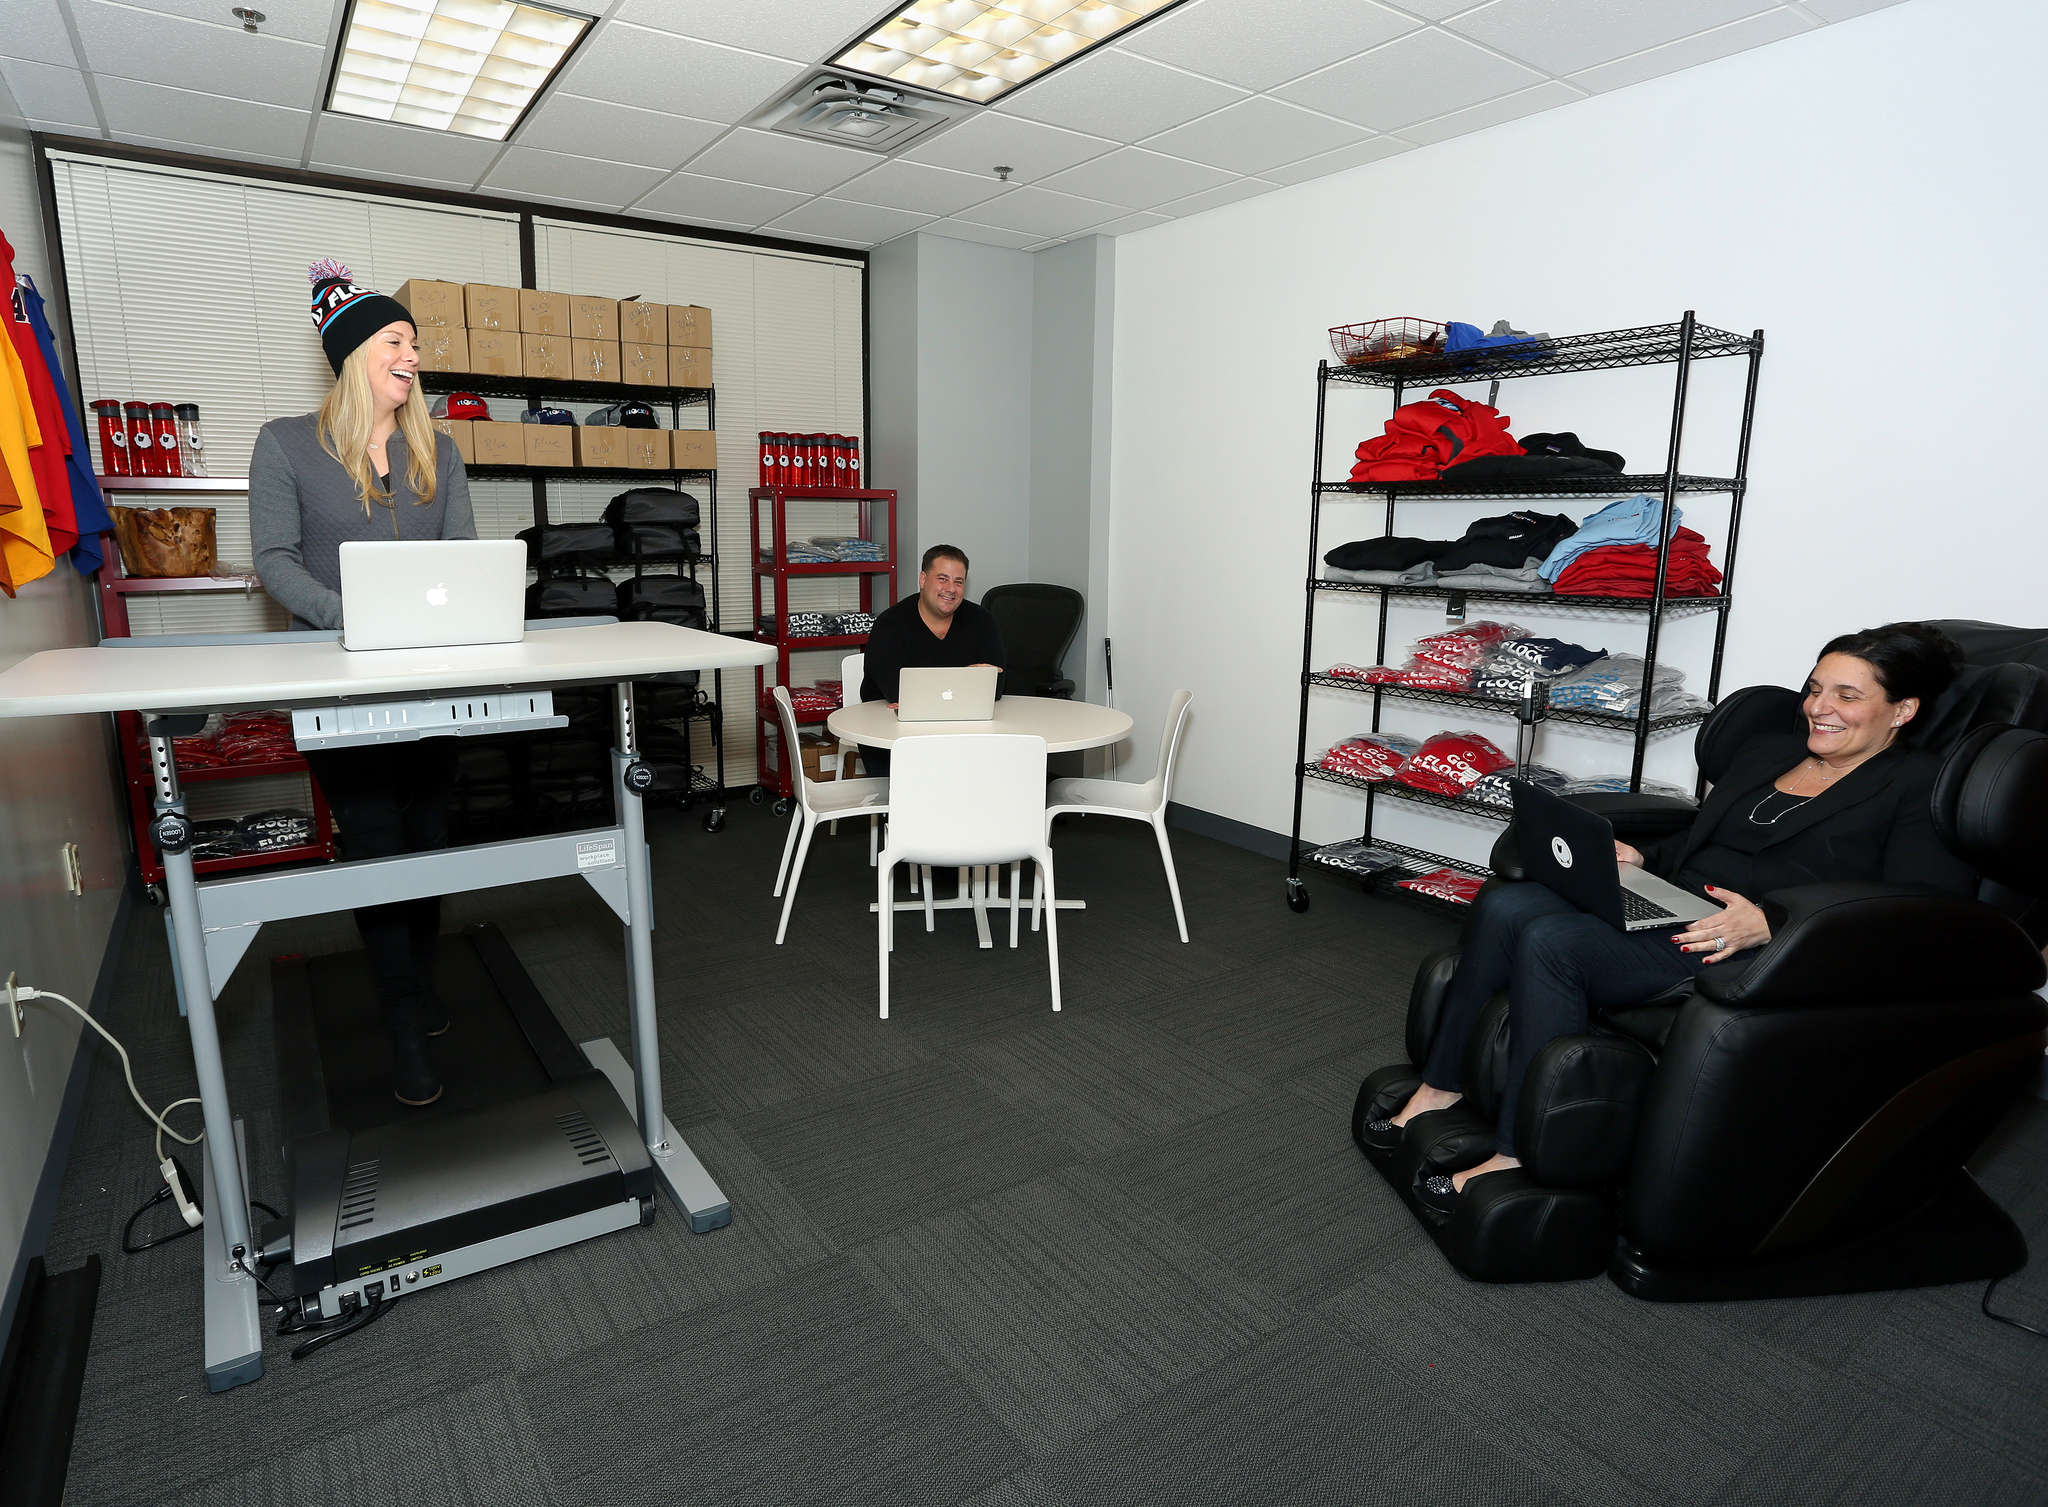 Caroline Weller (left), Josh Verne, and Zanny Oltman in FlockU´s King of Prussia headquarters. FlockU has tried to millennialize its space in an unremarkable-looking building in a suburban office park with open work stations, a treadmill, and a massage chair.